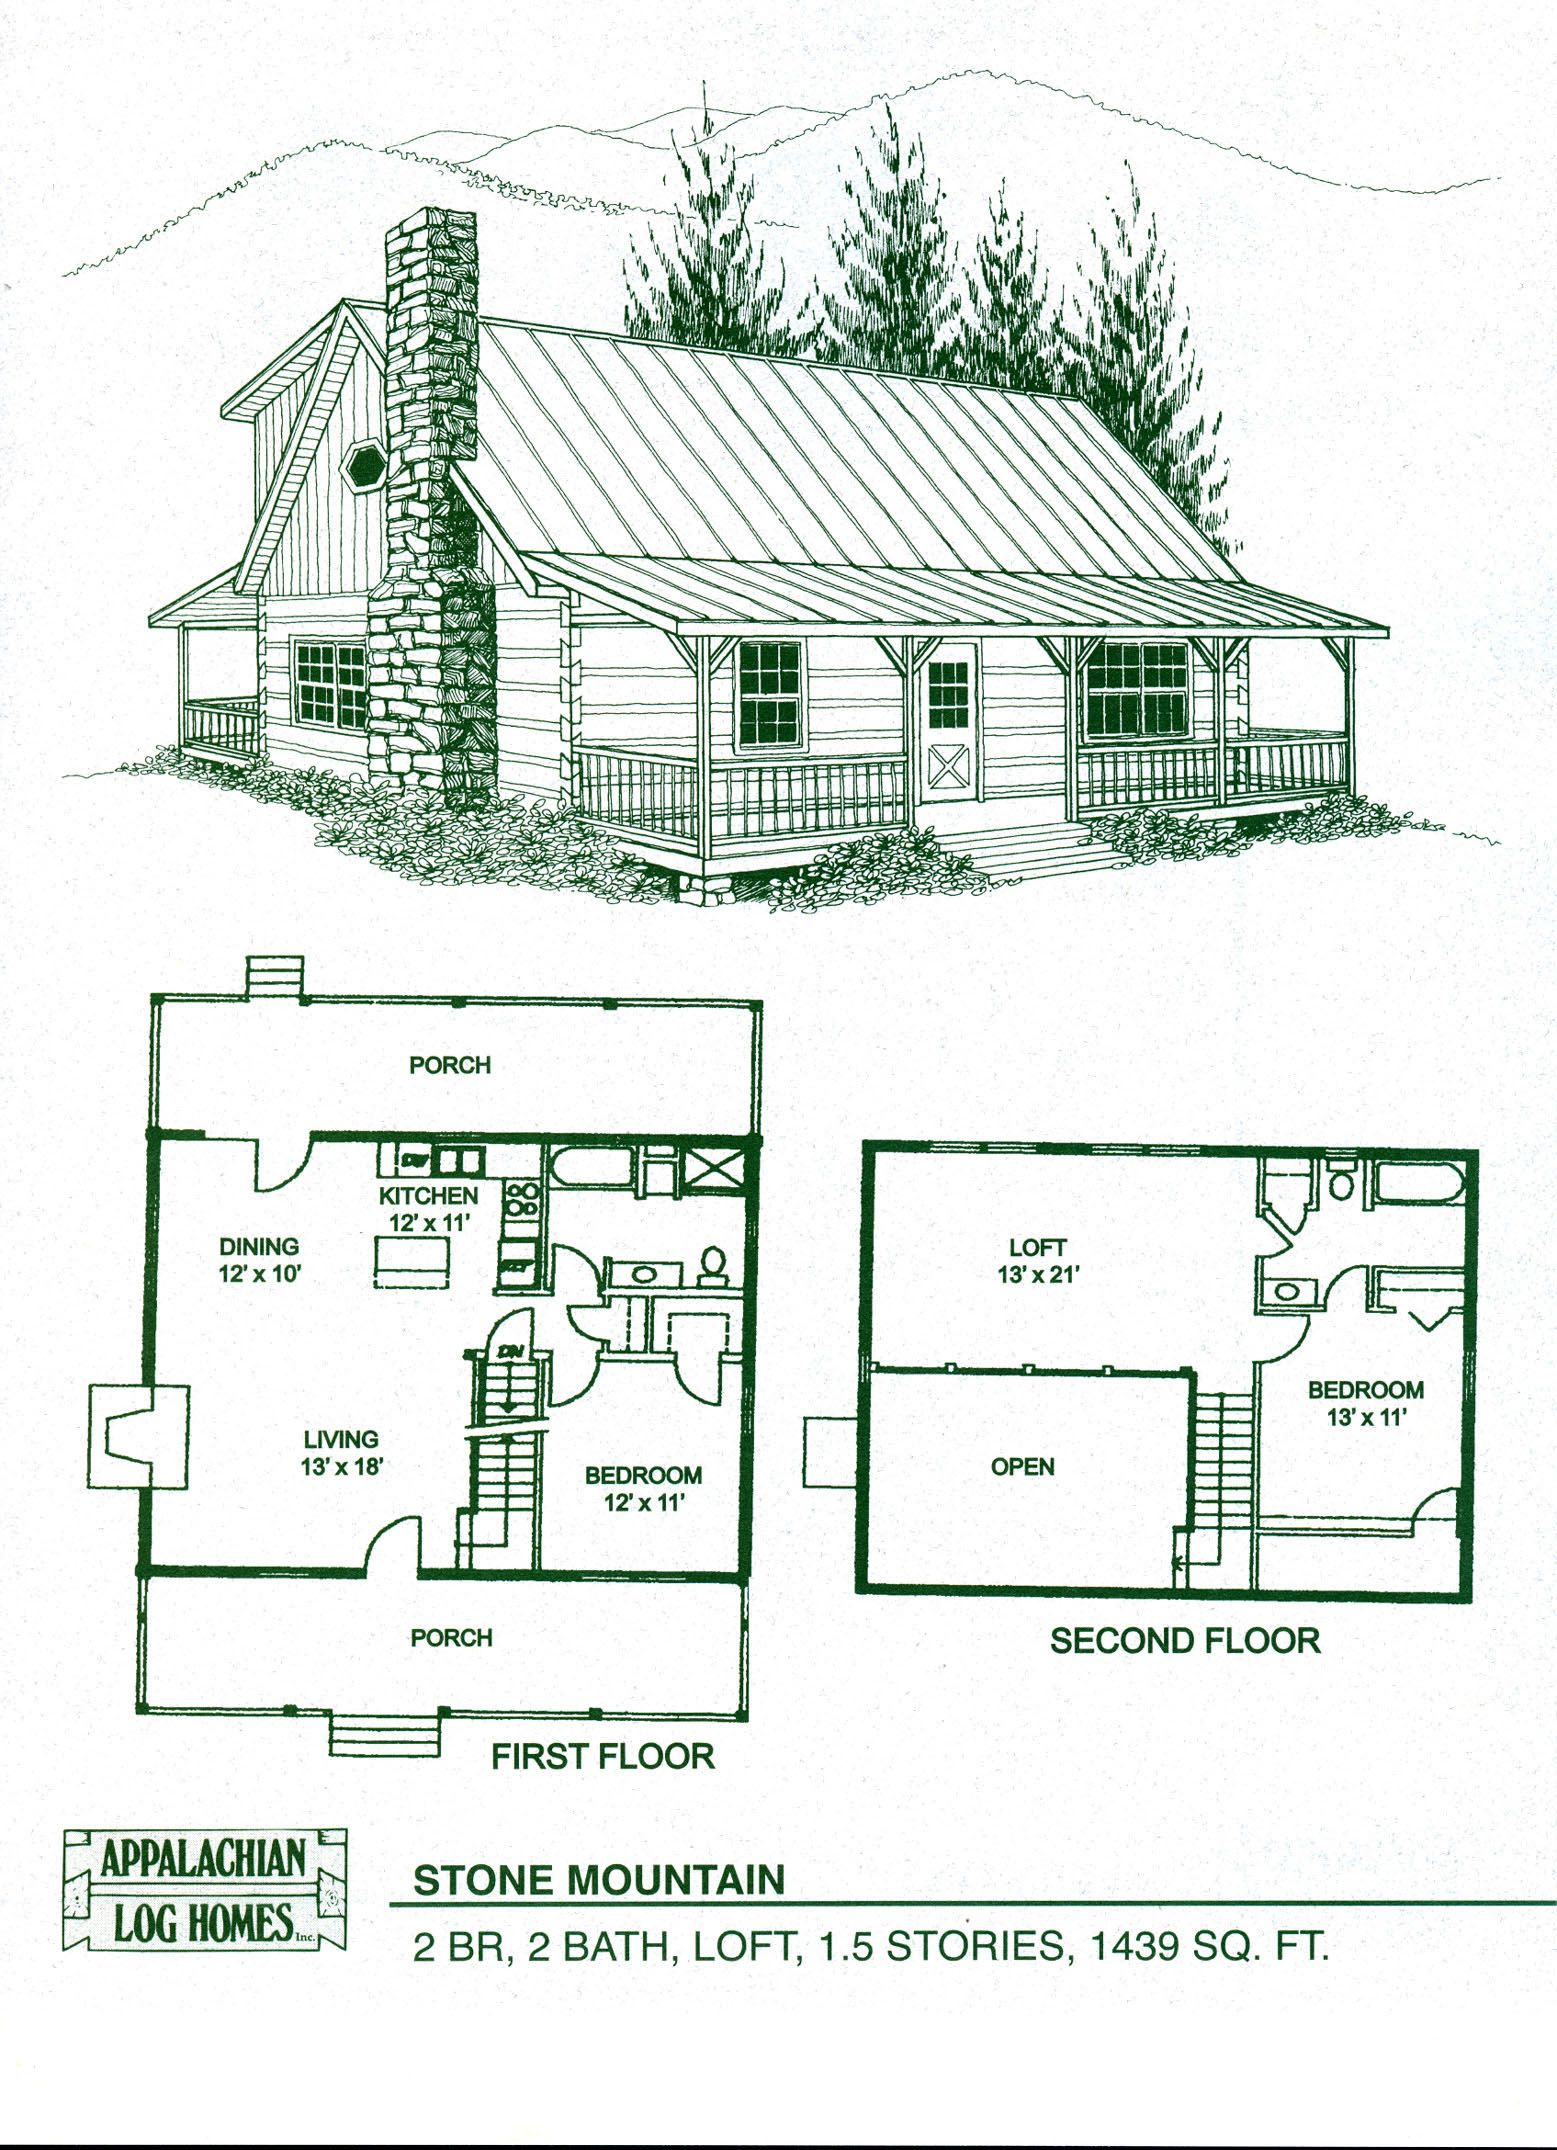 Cabin Home Plans With Loft Log Home Floor Plans Log Cabin Kits Appalachian Log Homes I Love This Cabin House Plans Log Cabin Floor Plans Log Cabin Plans